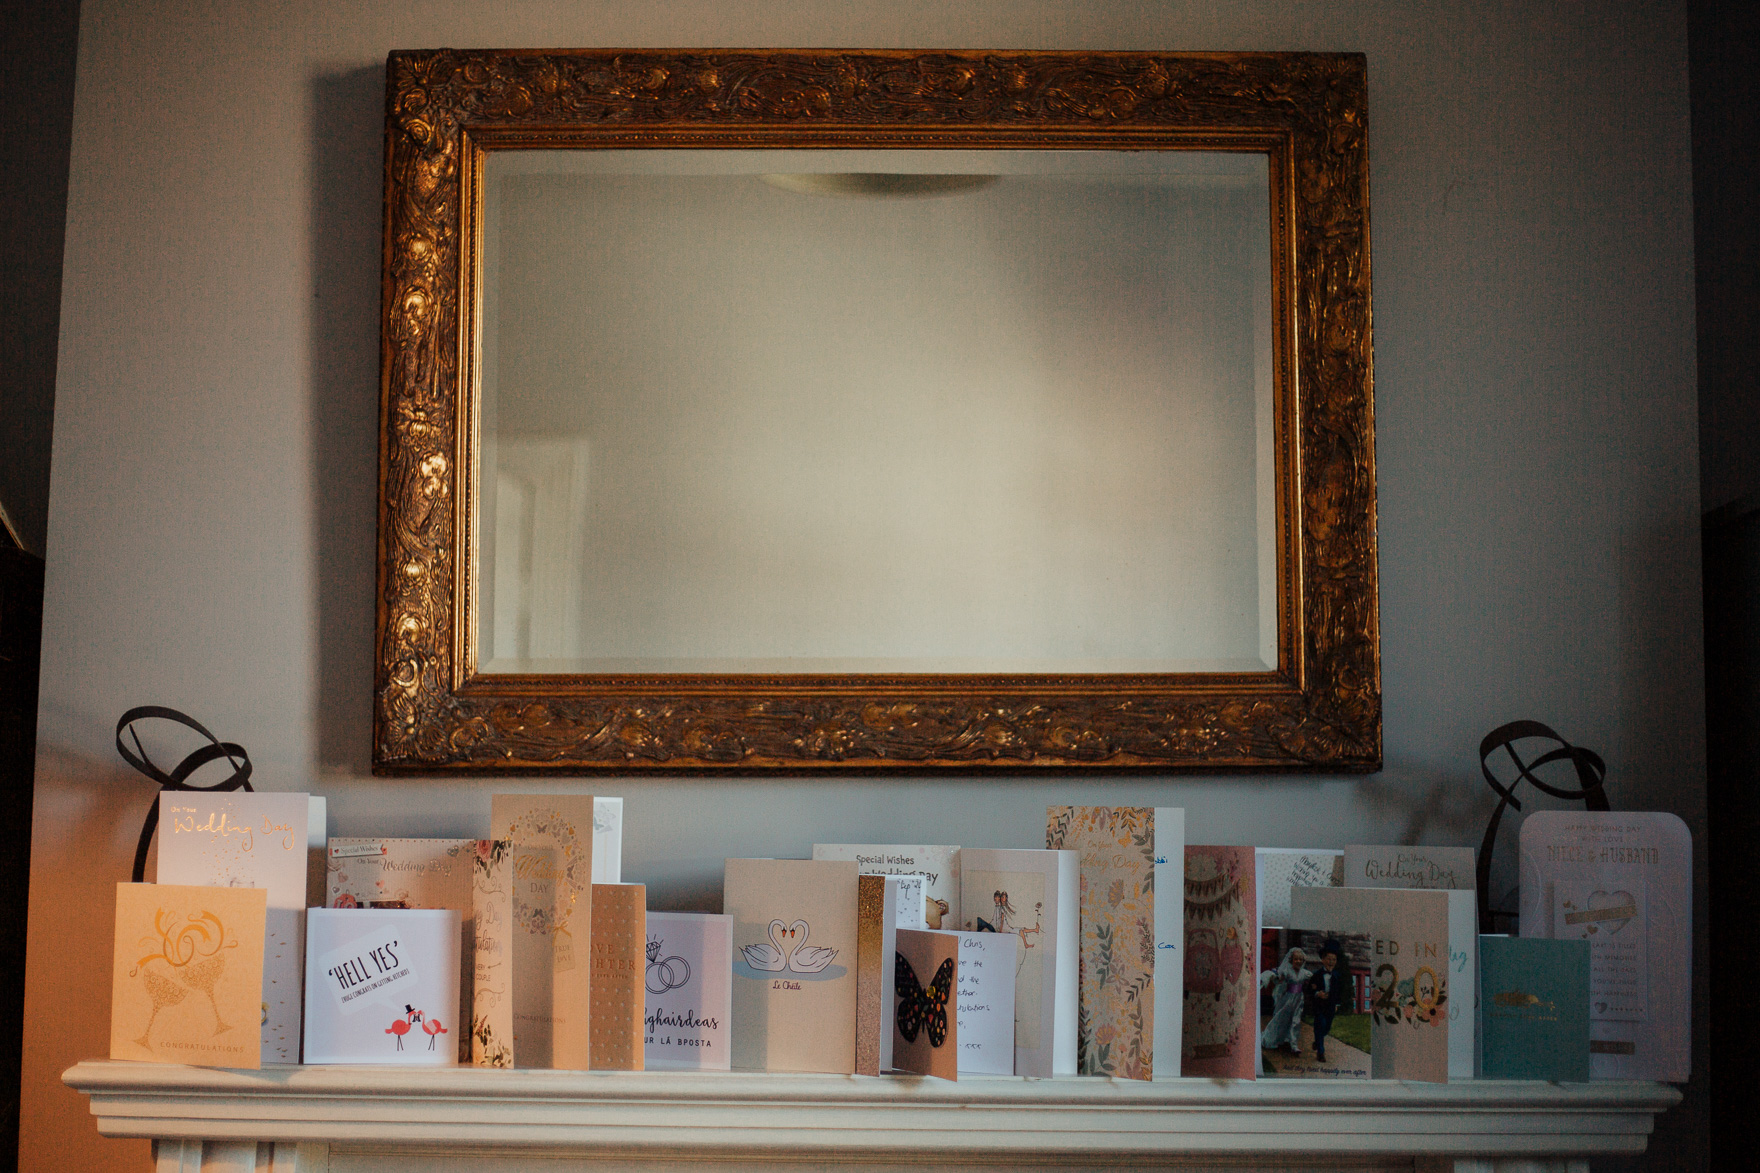 A painting of a large mirror